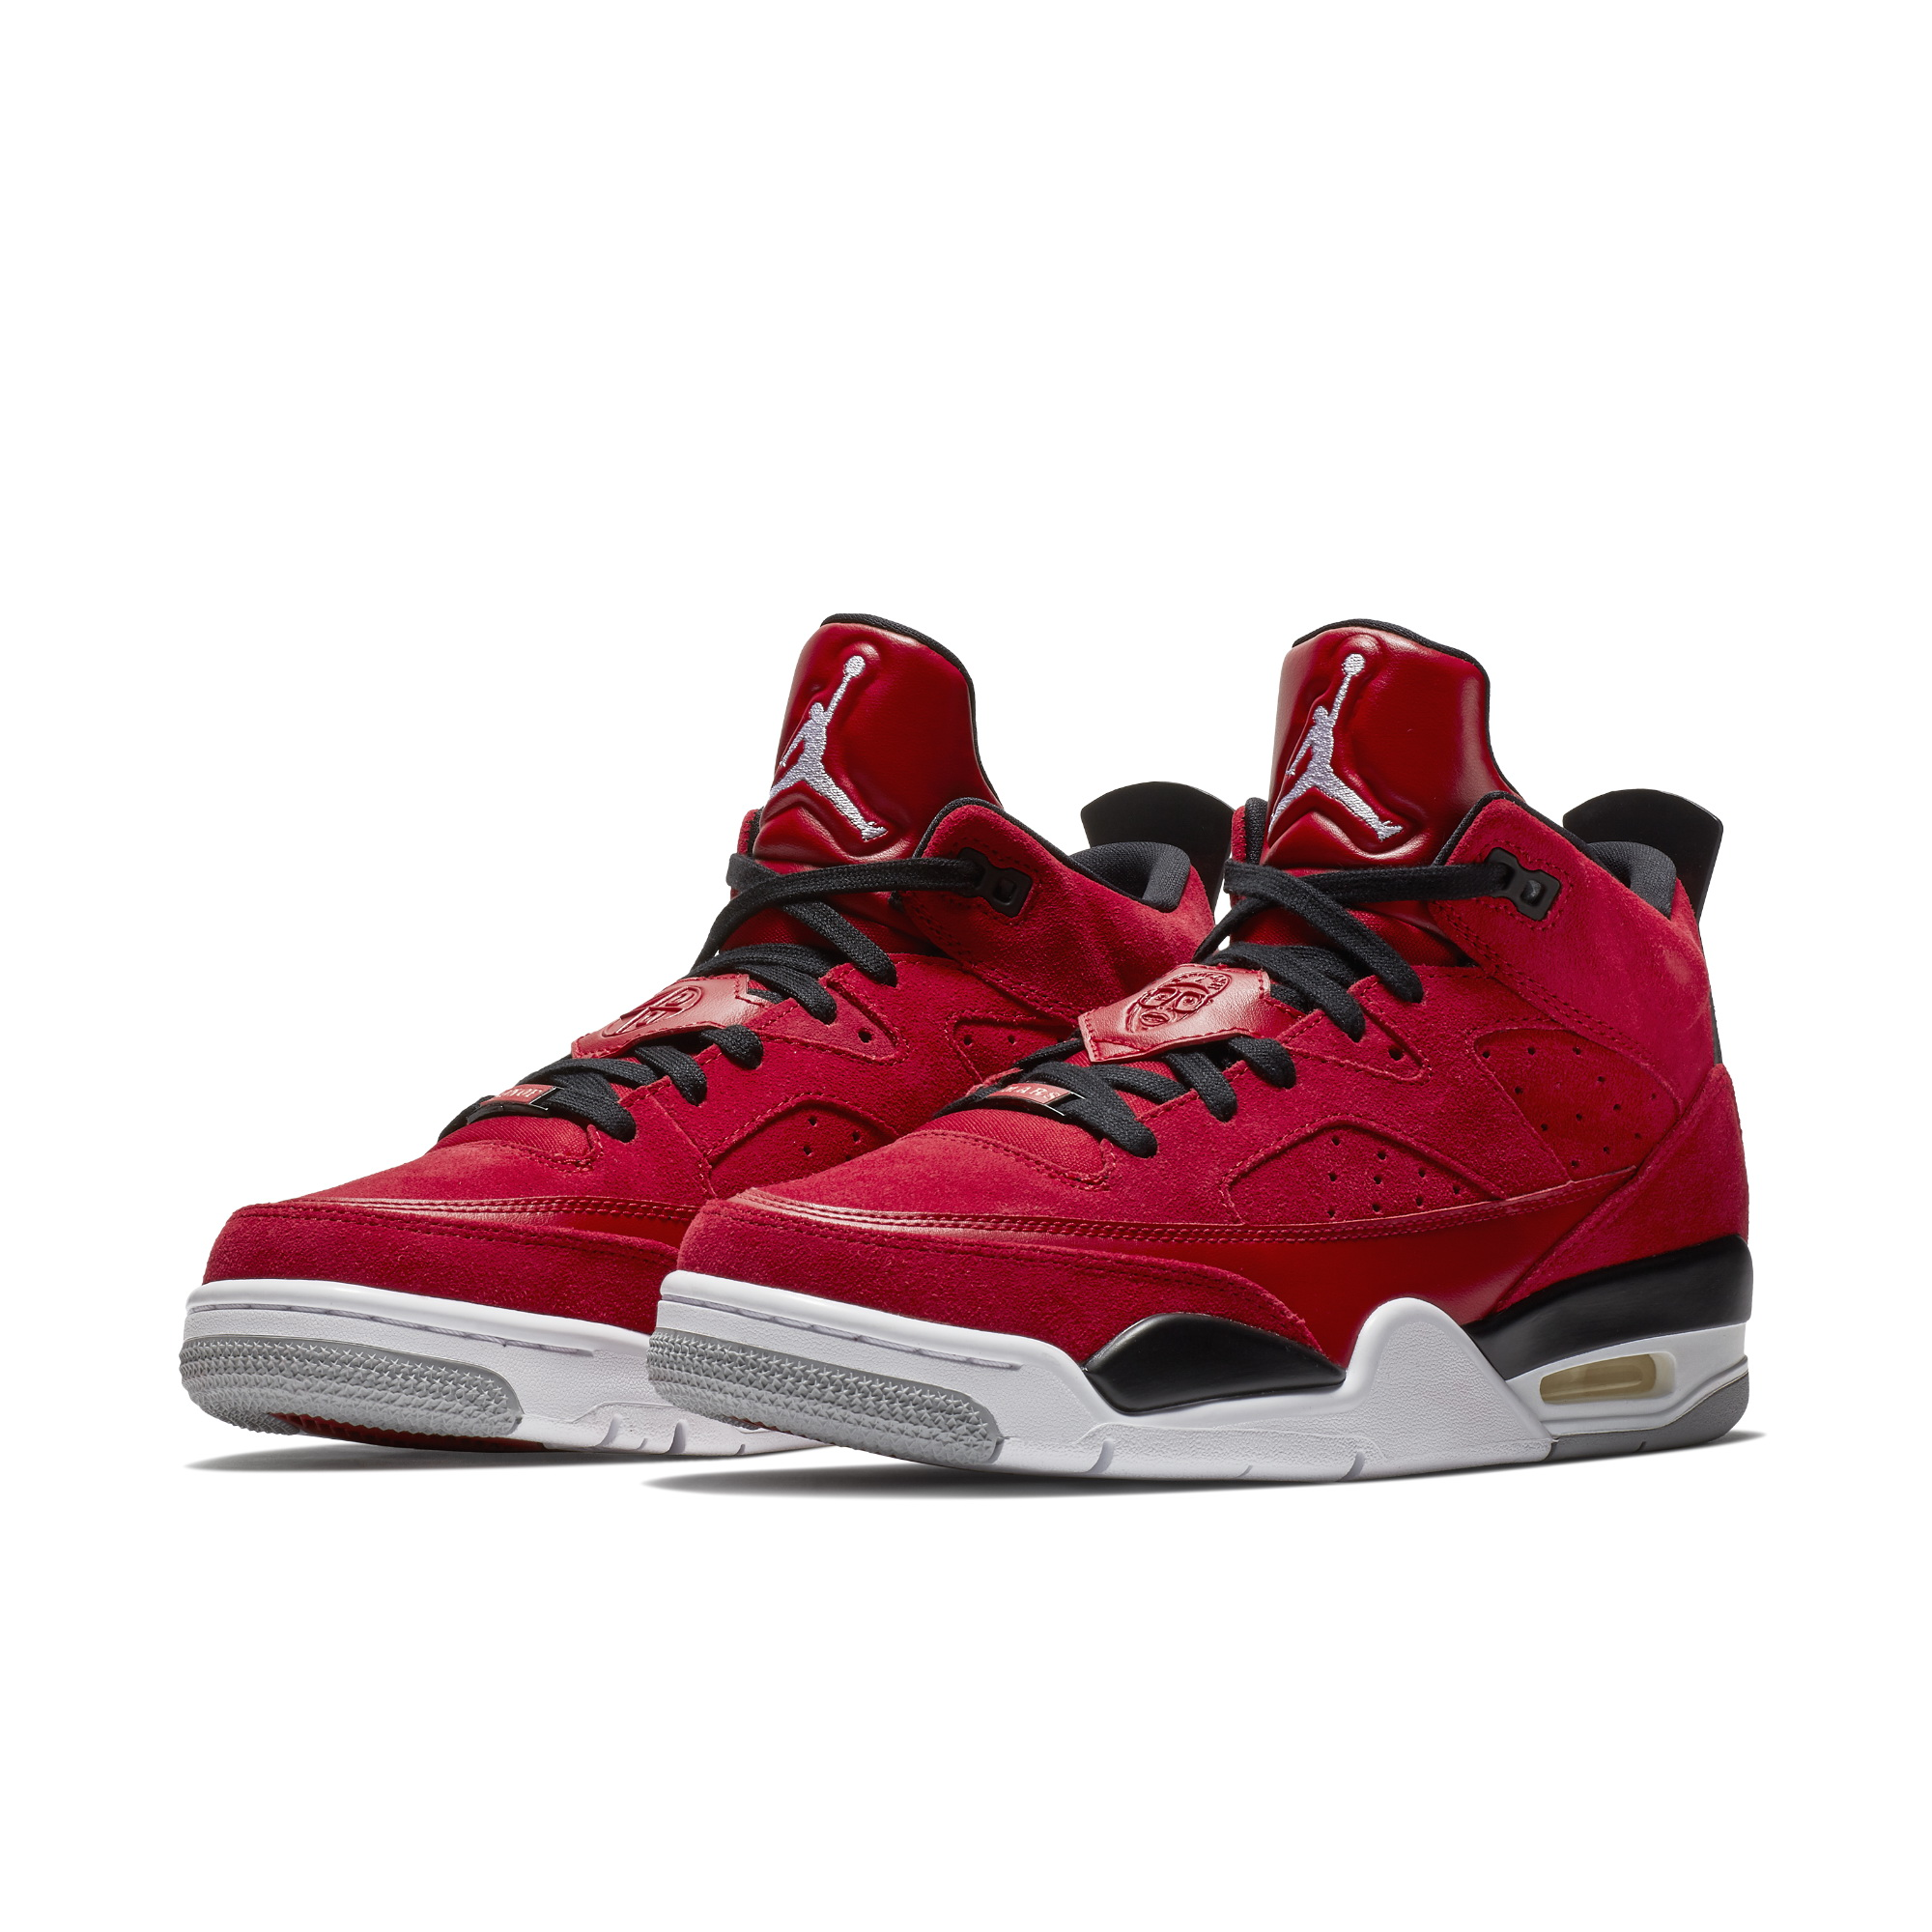 JORDAN SON OF LOW Mens Sneakers 580603-603